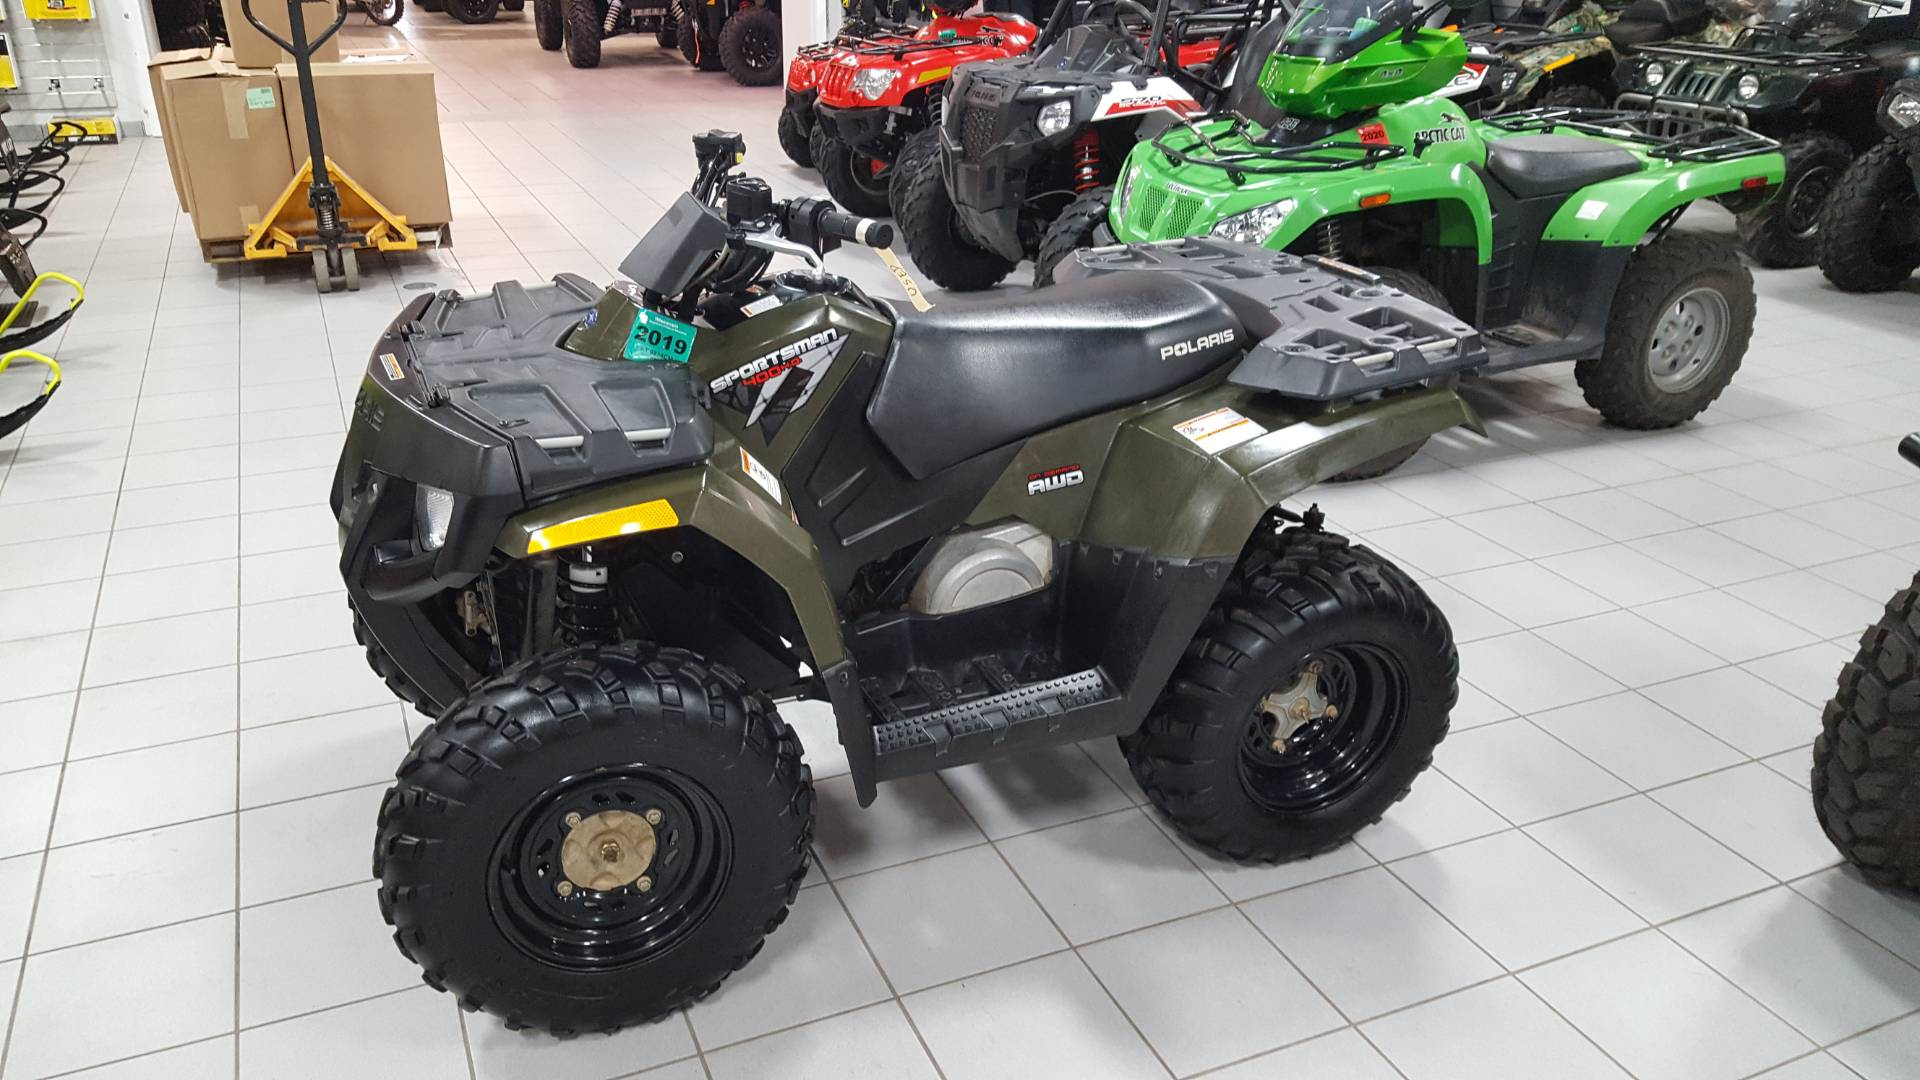 2009 Polaris Sportsman 400 H.O. 1